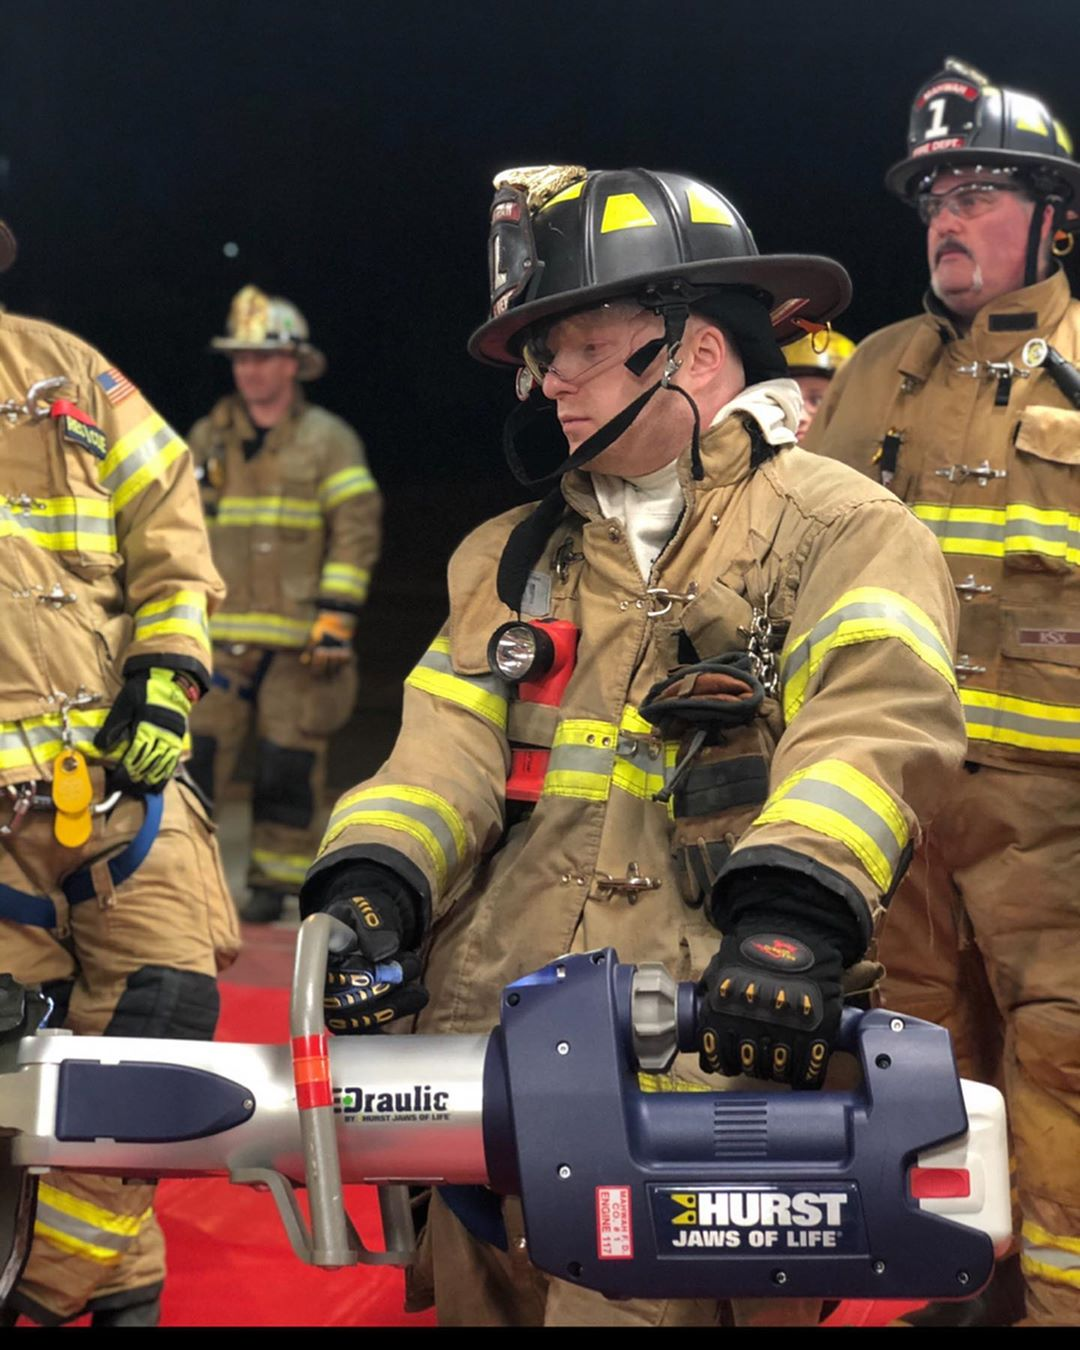 Drill Night: Vehicle Extrication